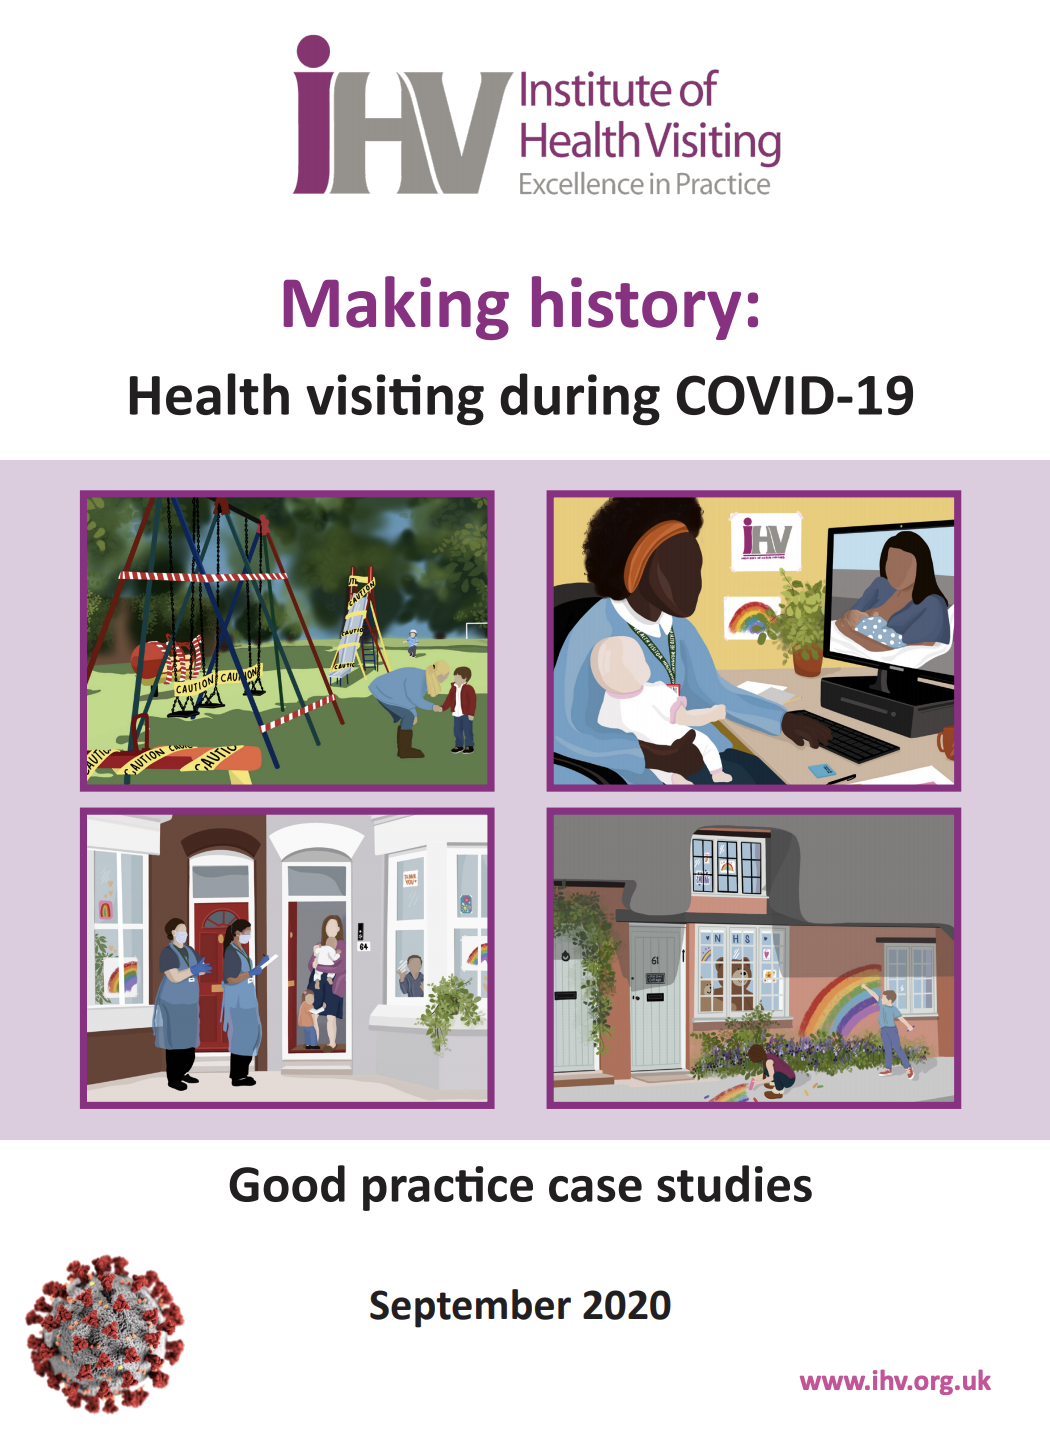 HV during Covid - Case Study - taking a support group for mothers with low mood and anxiety online featured image